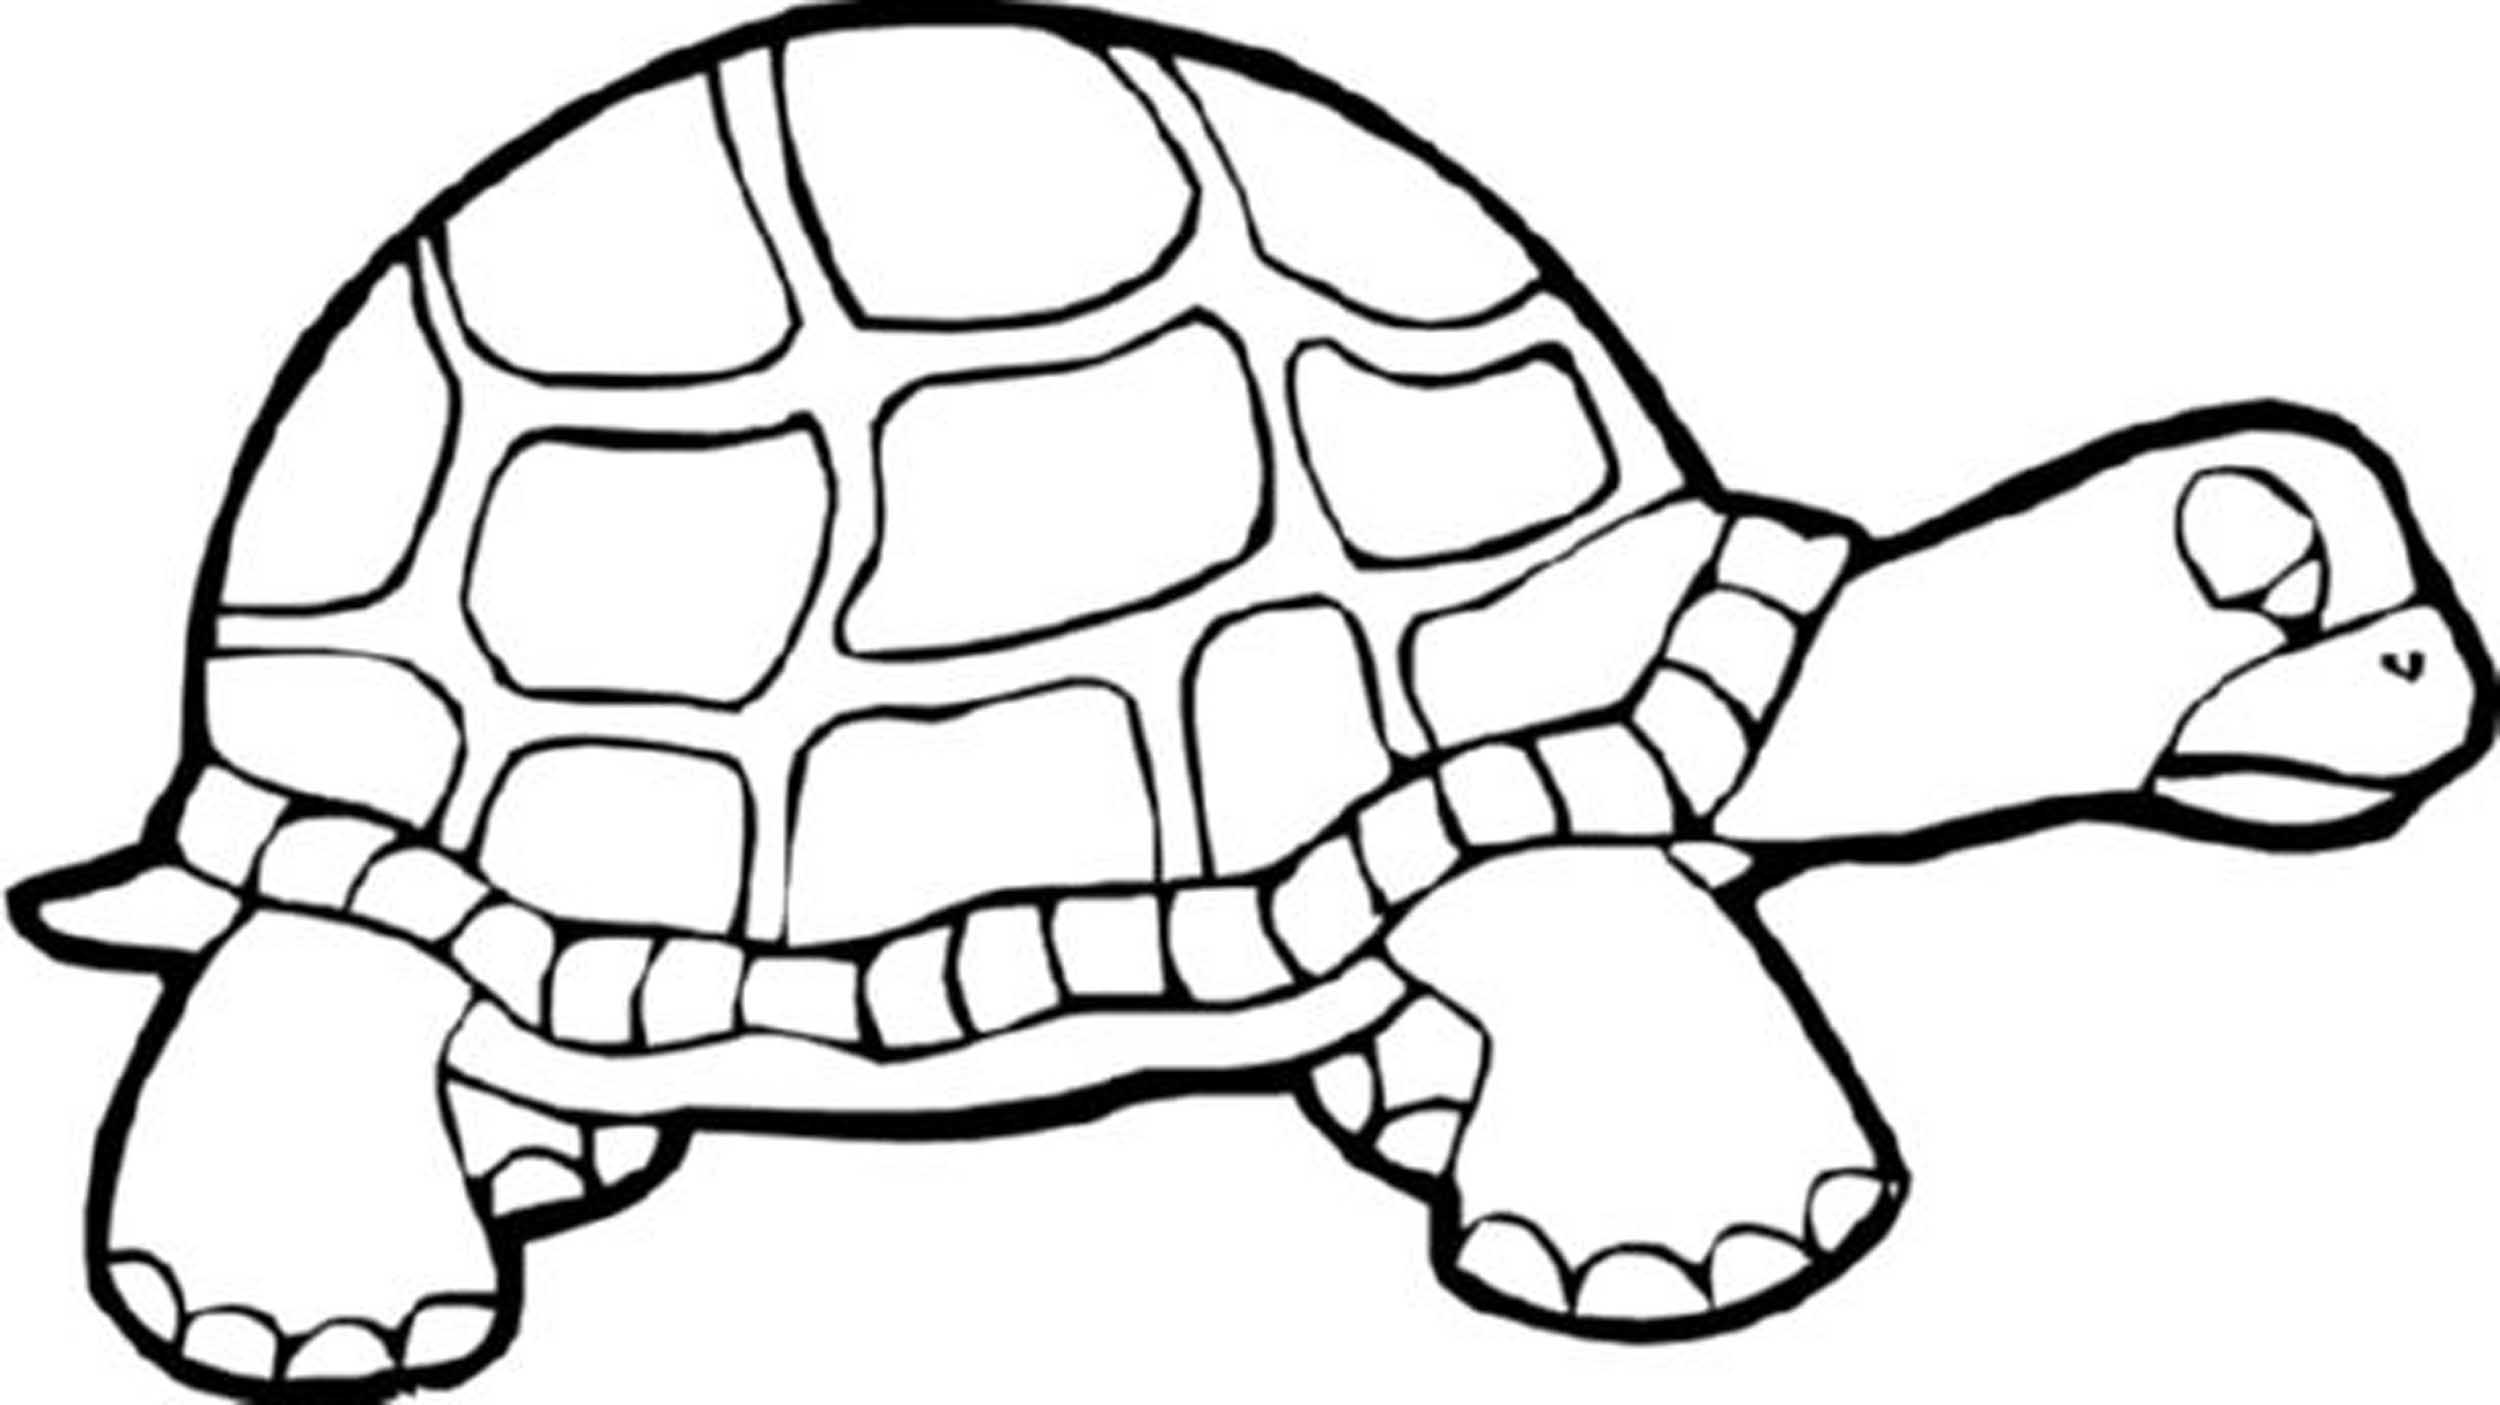 turtle coloring book page top 20 free printable turtle coloring pages online page book turtle coloring